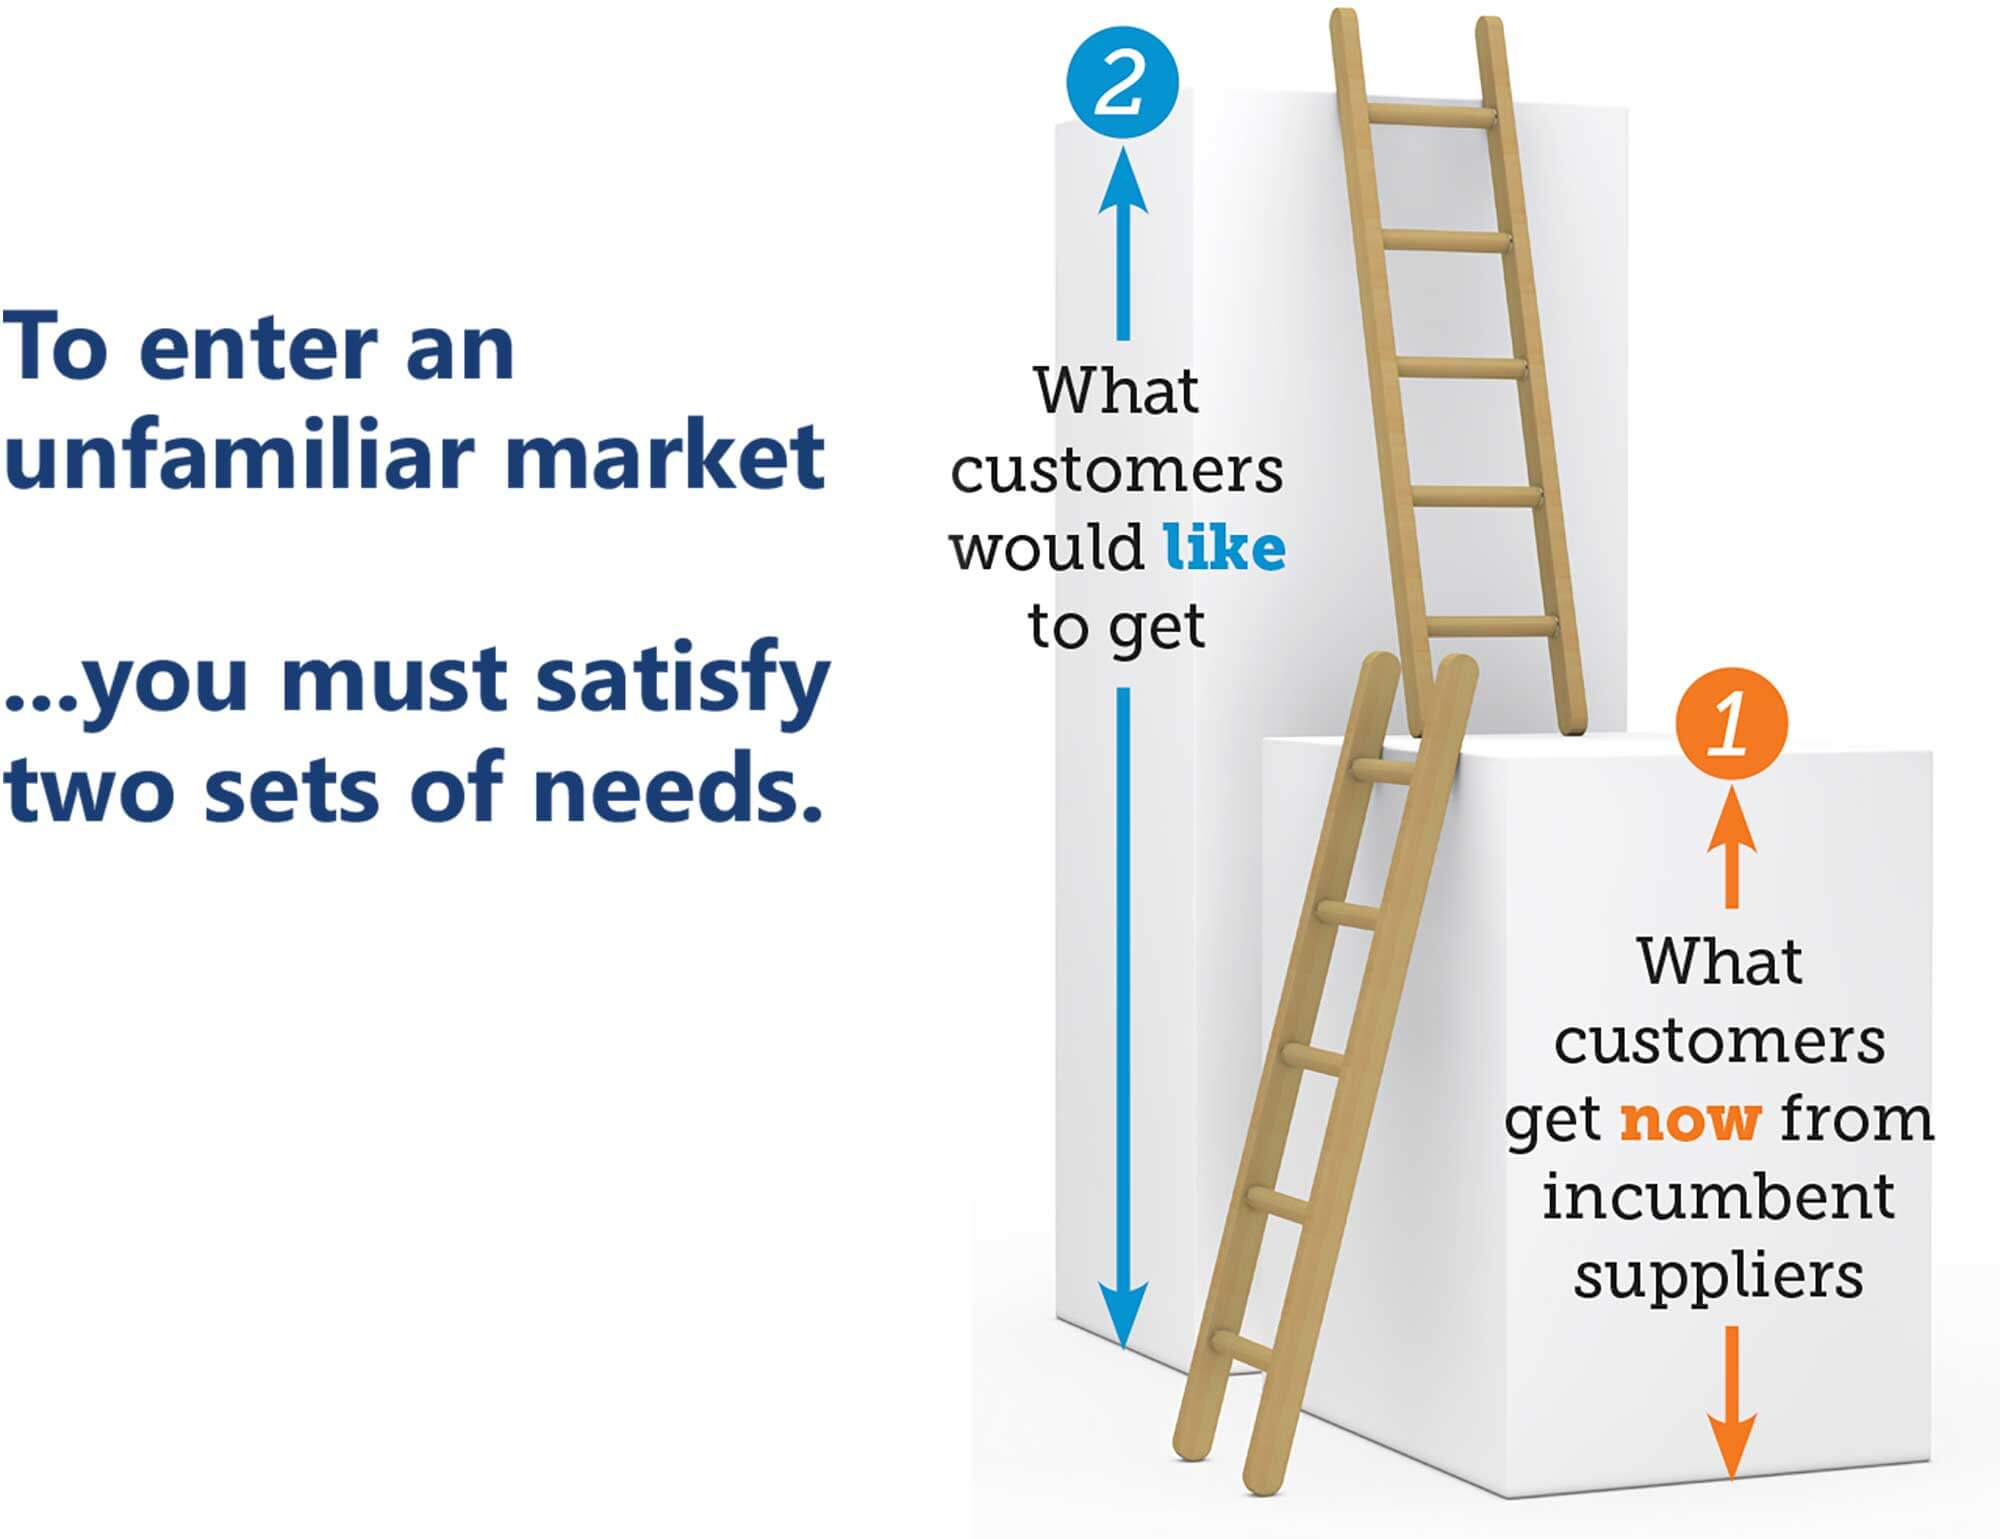 Two Sets of Needs in Unfamiliar Markets illustration